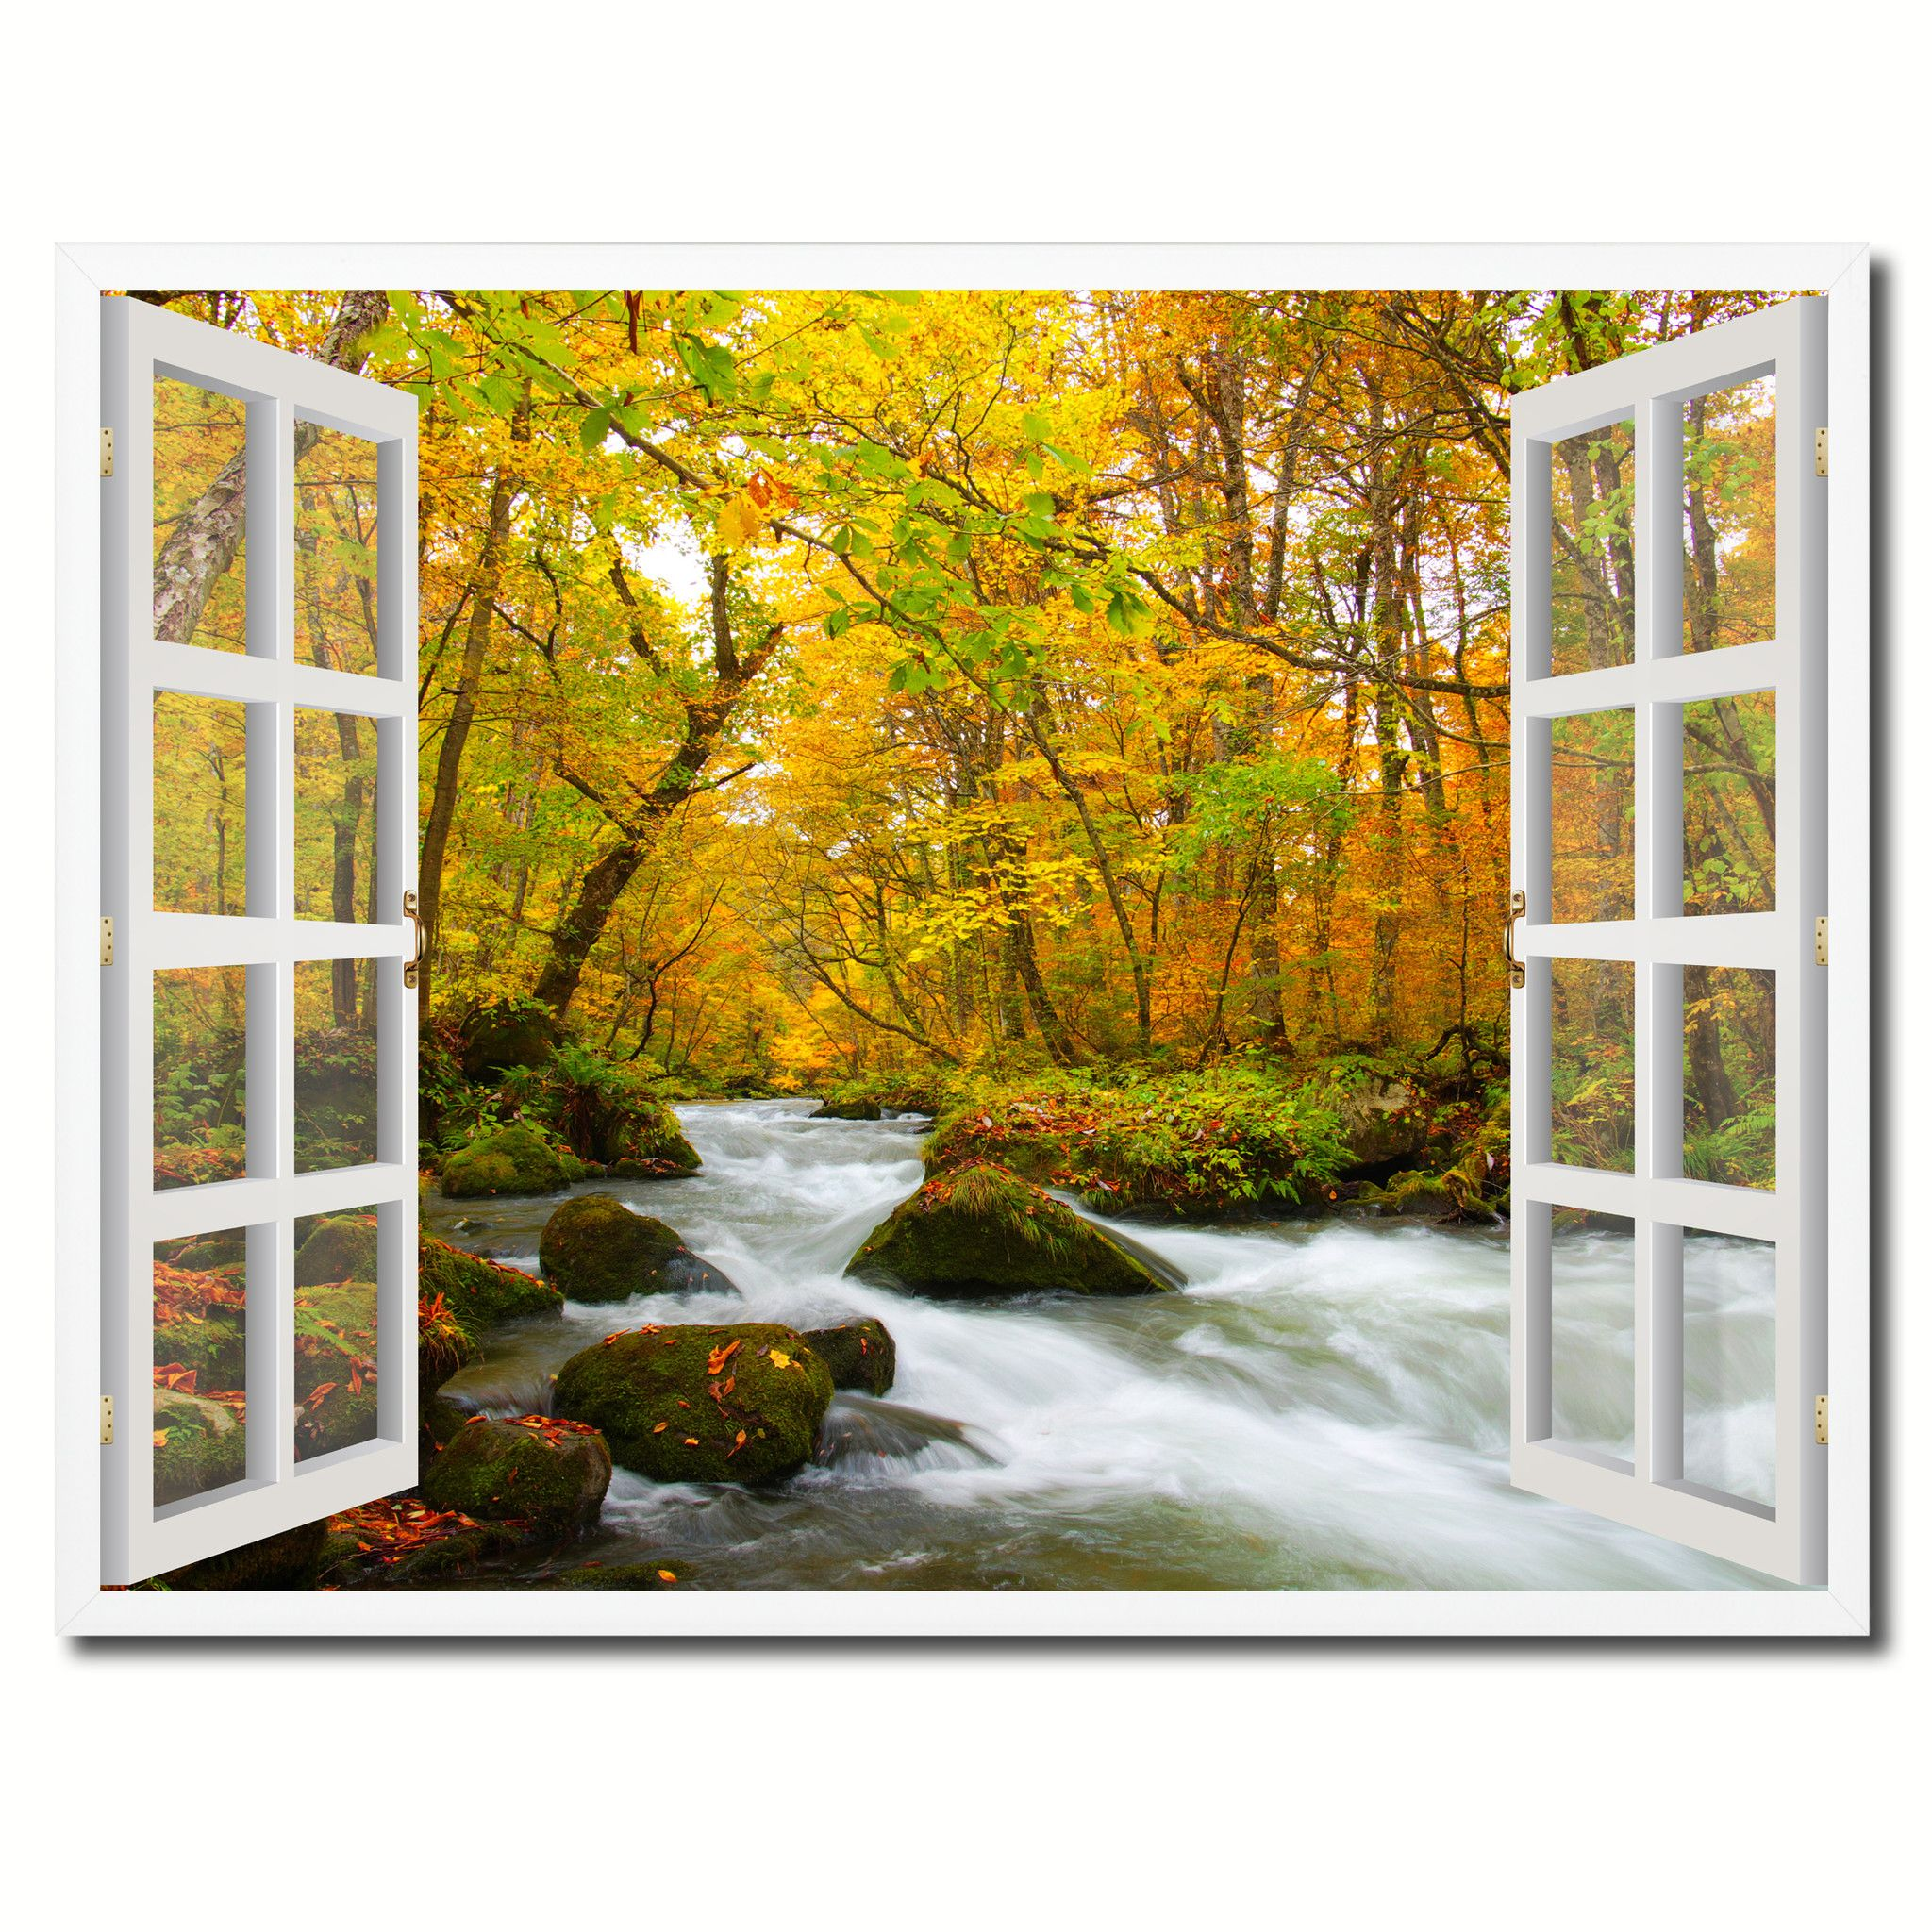 Autumn River Picture French Window Framed Canvas Print Home Decor ...